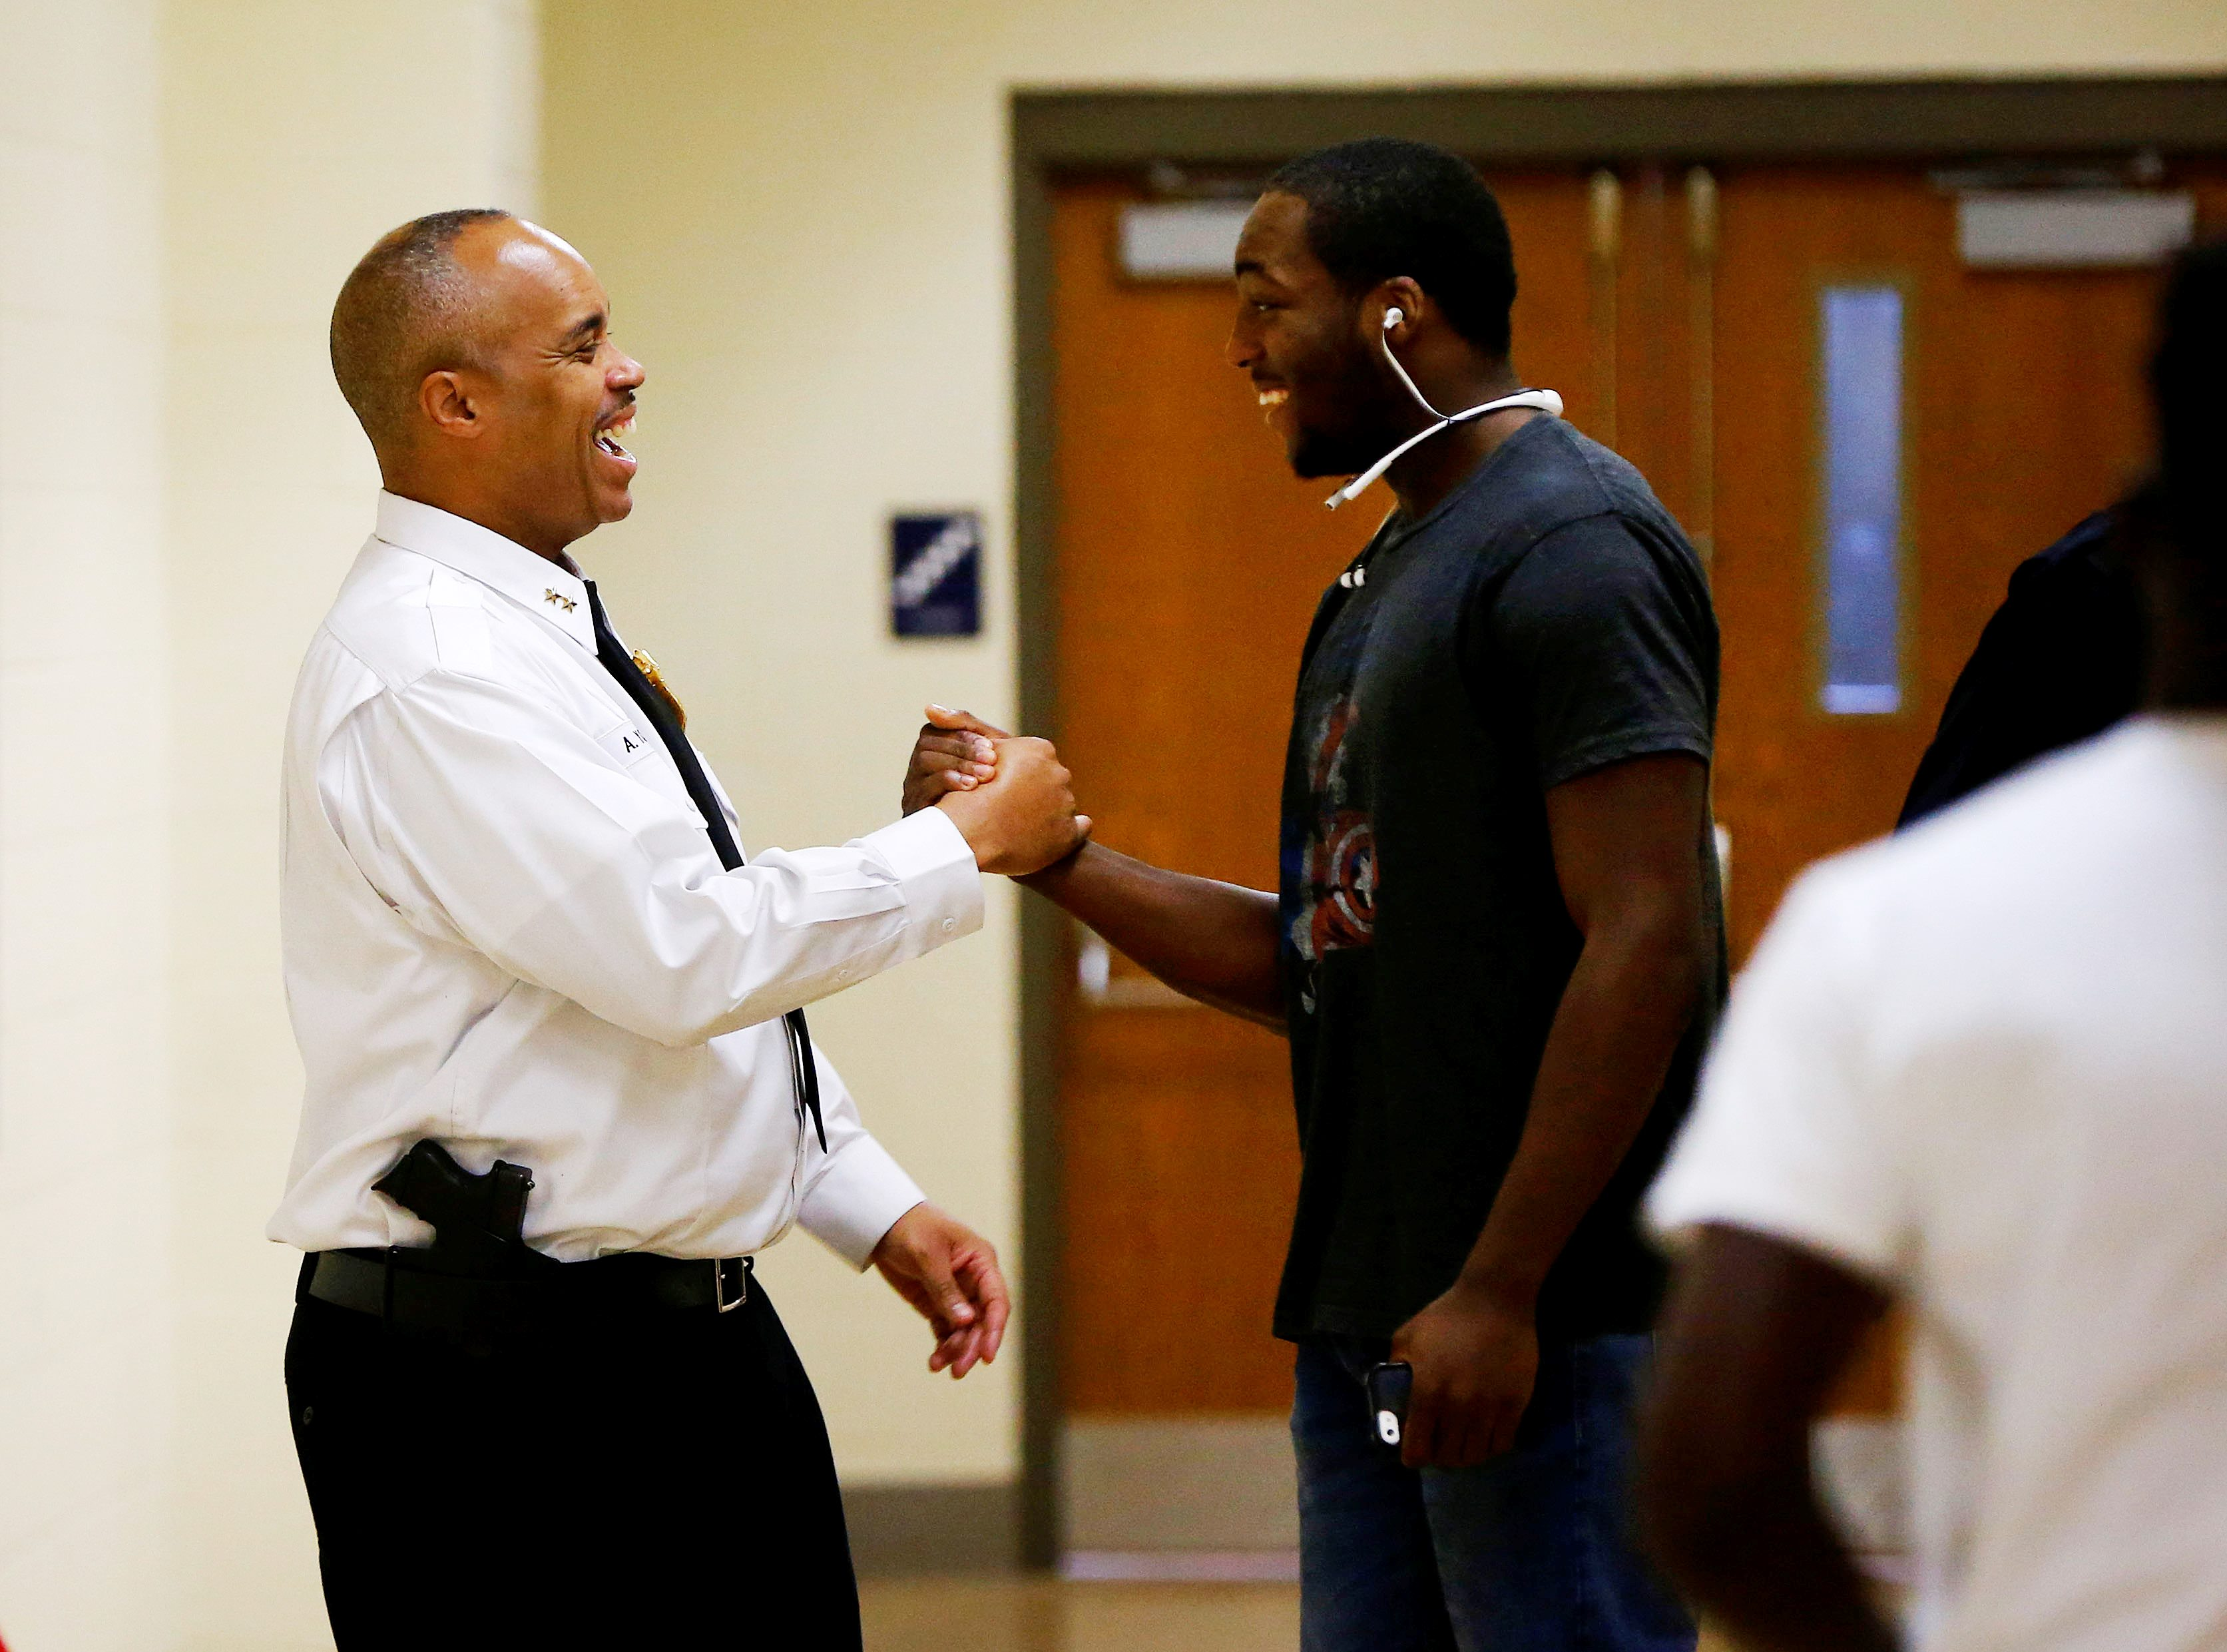 Schools Resource Chief Aaron Young greets a students in the hallway at Bennett High School. (Mark Mulville/Buffalo News)